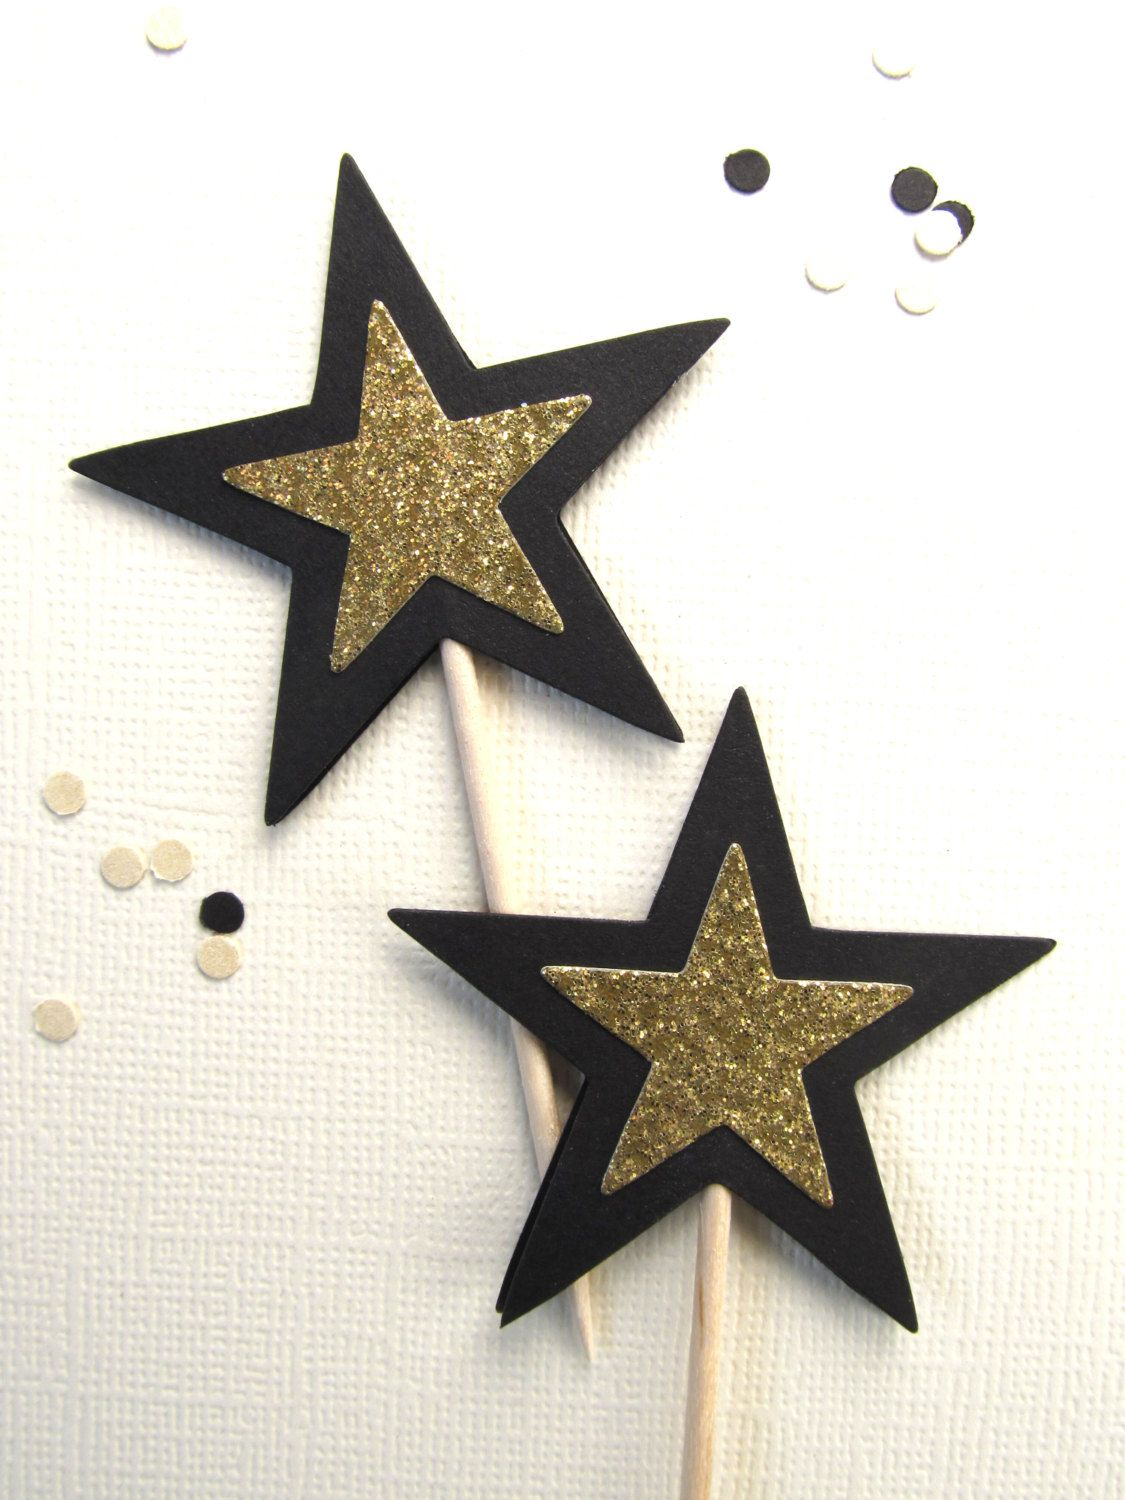 Custom Star Gobo Lighting Projected On A Wall During An Awards